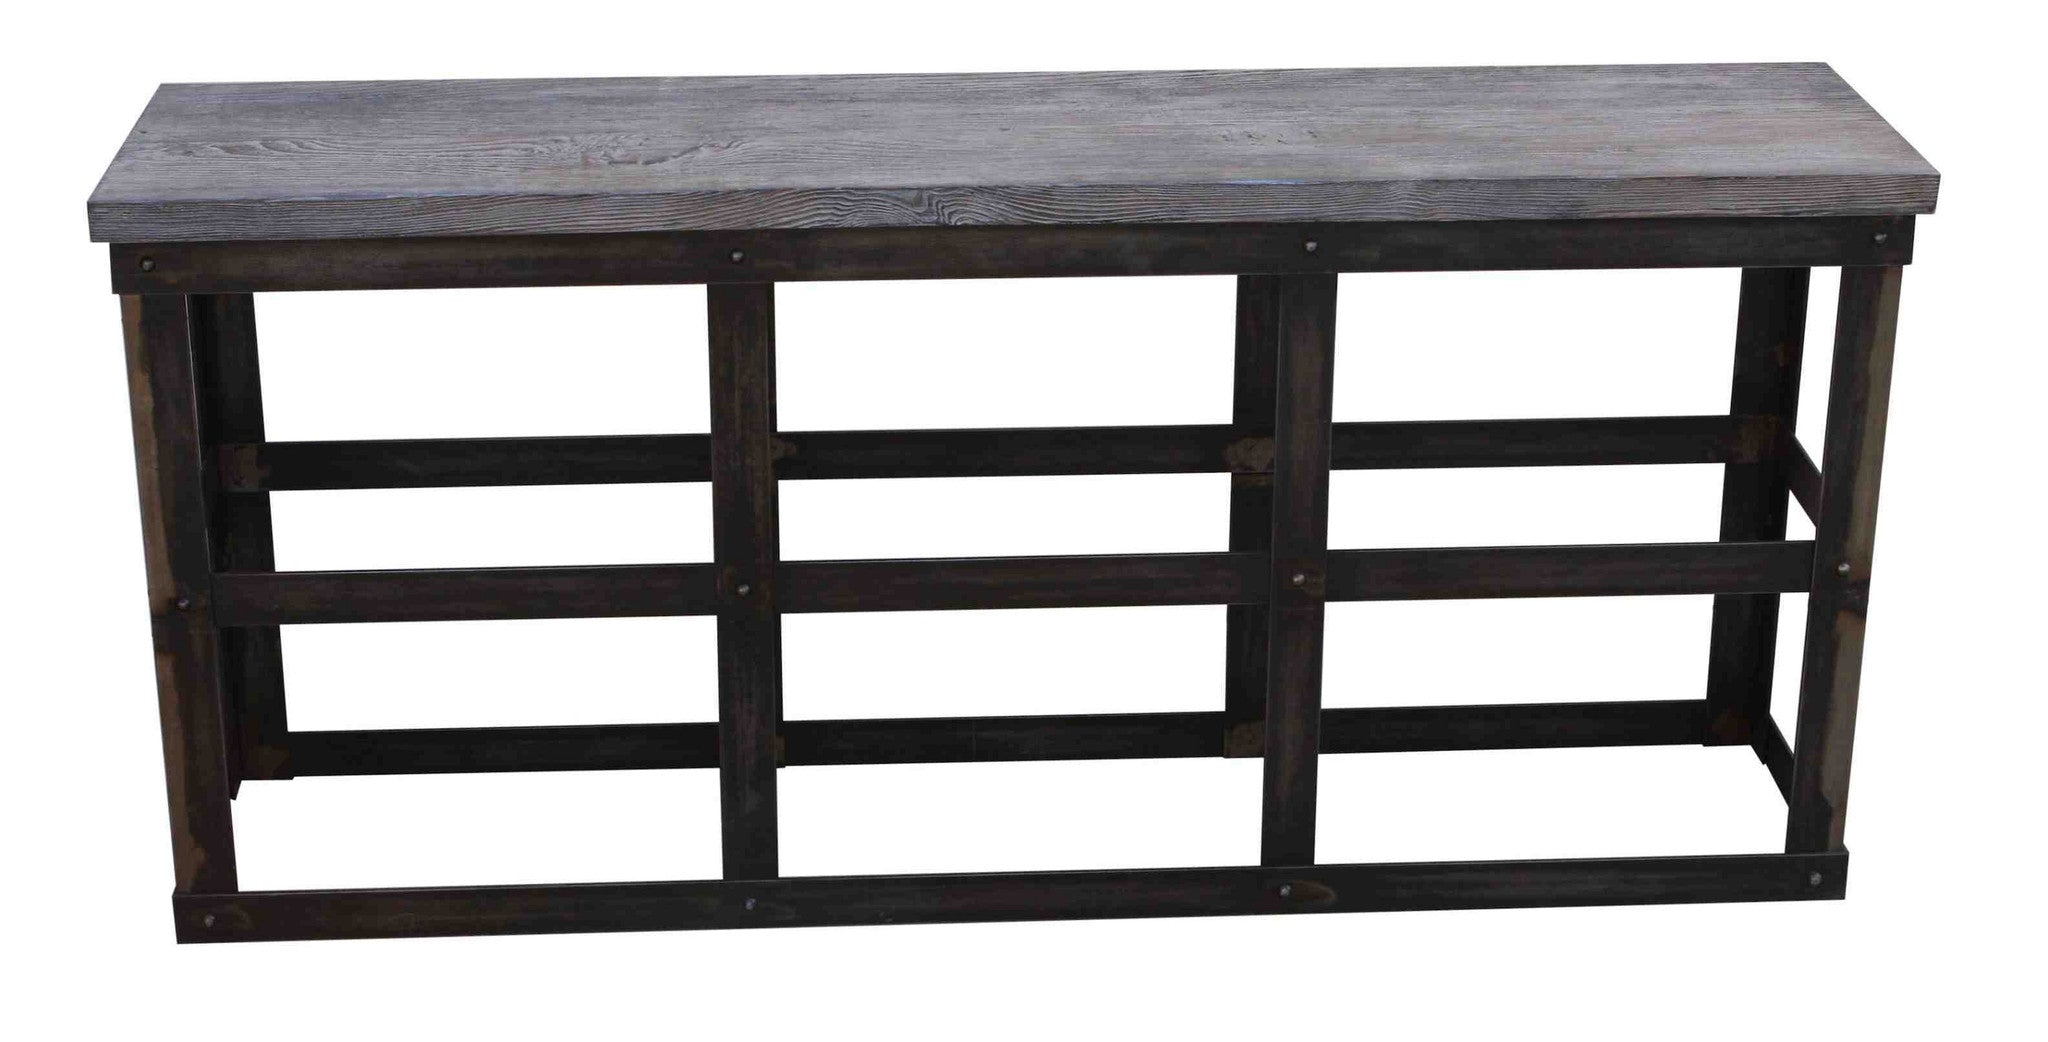 New York Industrial Console